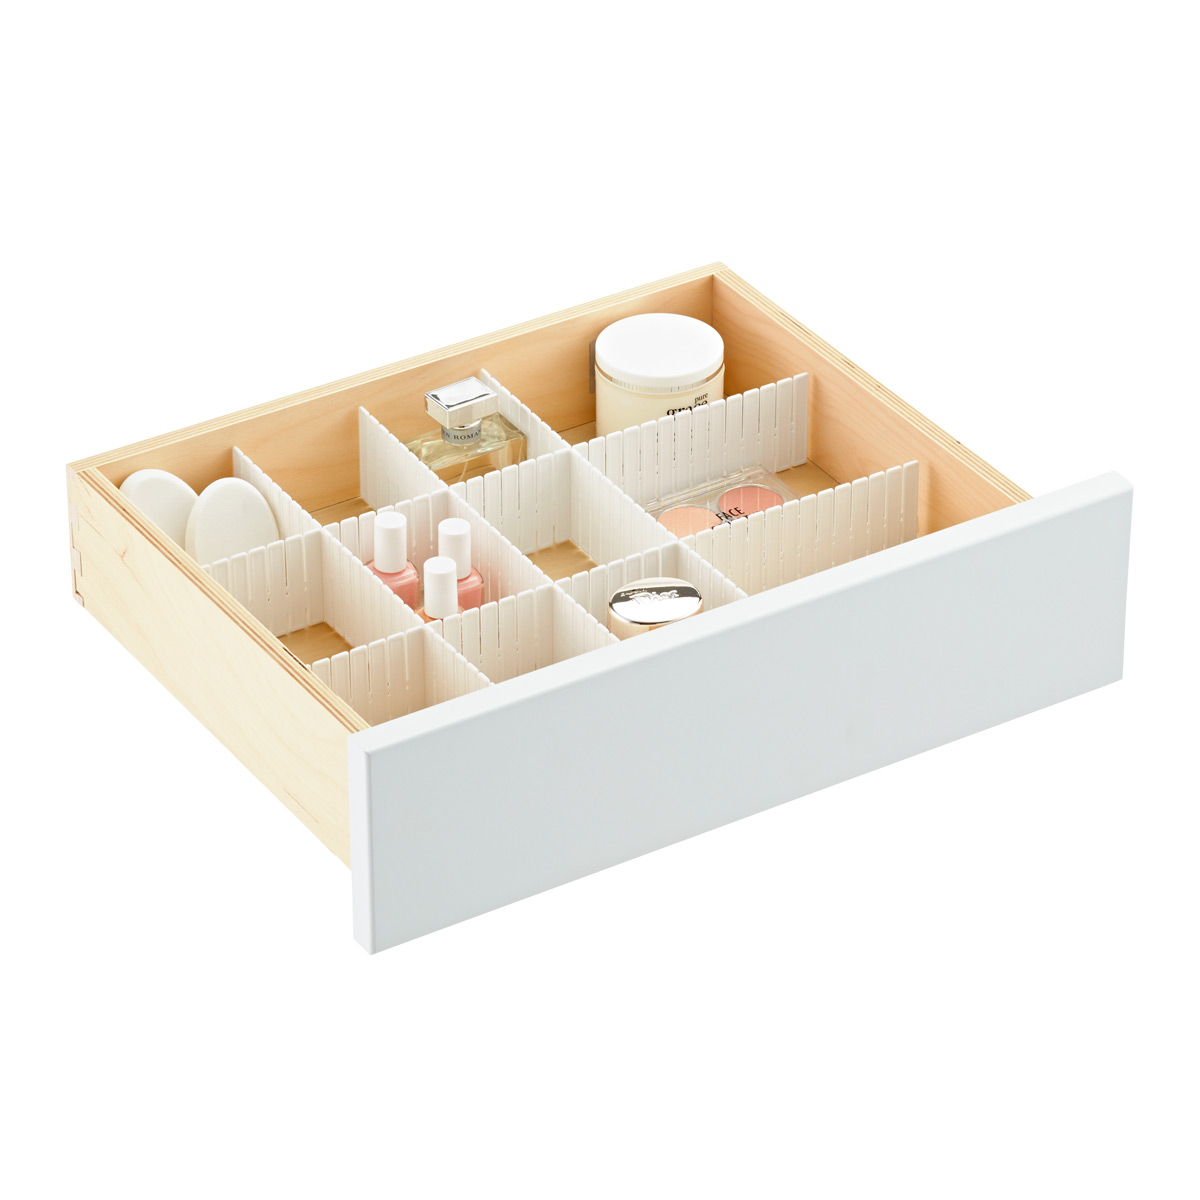 Drawer Organizers: Bathroom Drawer Organizers & Acrylic Drawer Organizers